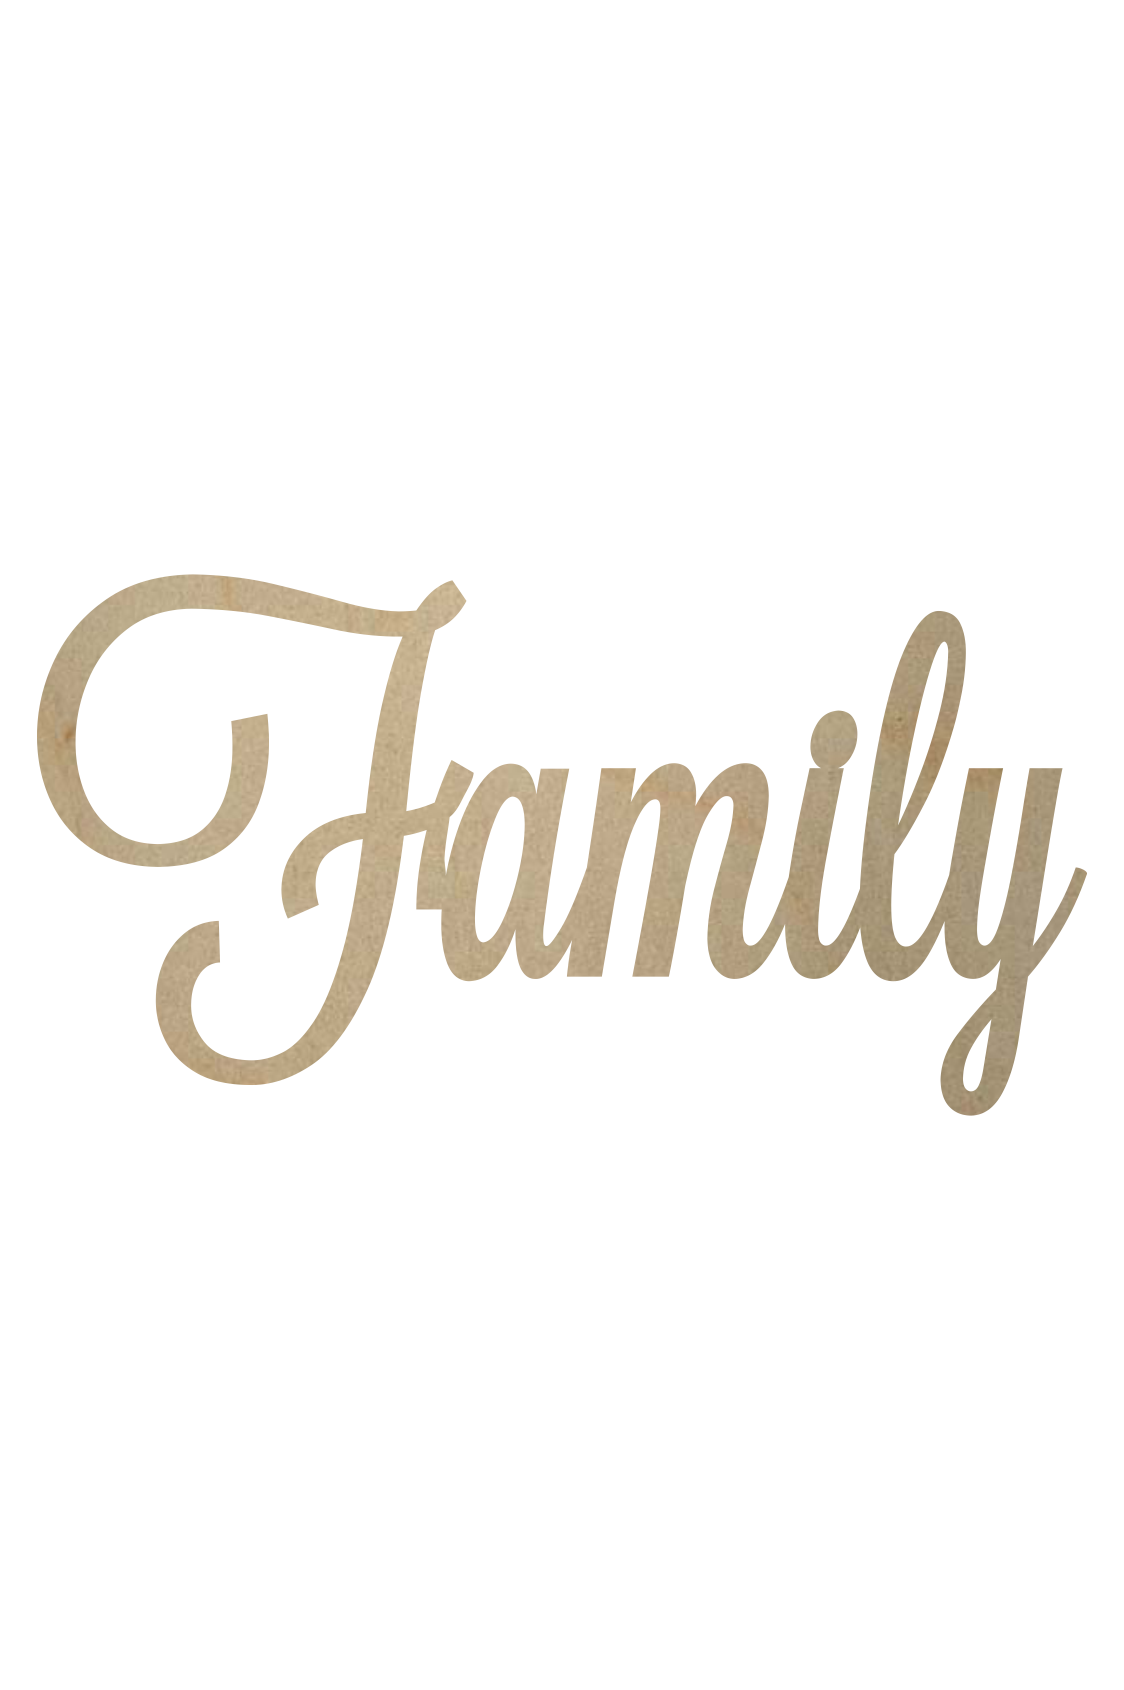 family wooden word cutout woodencutouts com crosses clip art free crosses clip art black and white